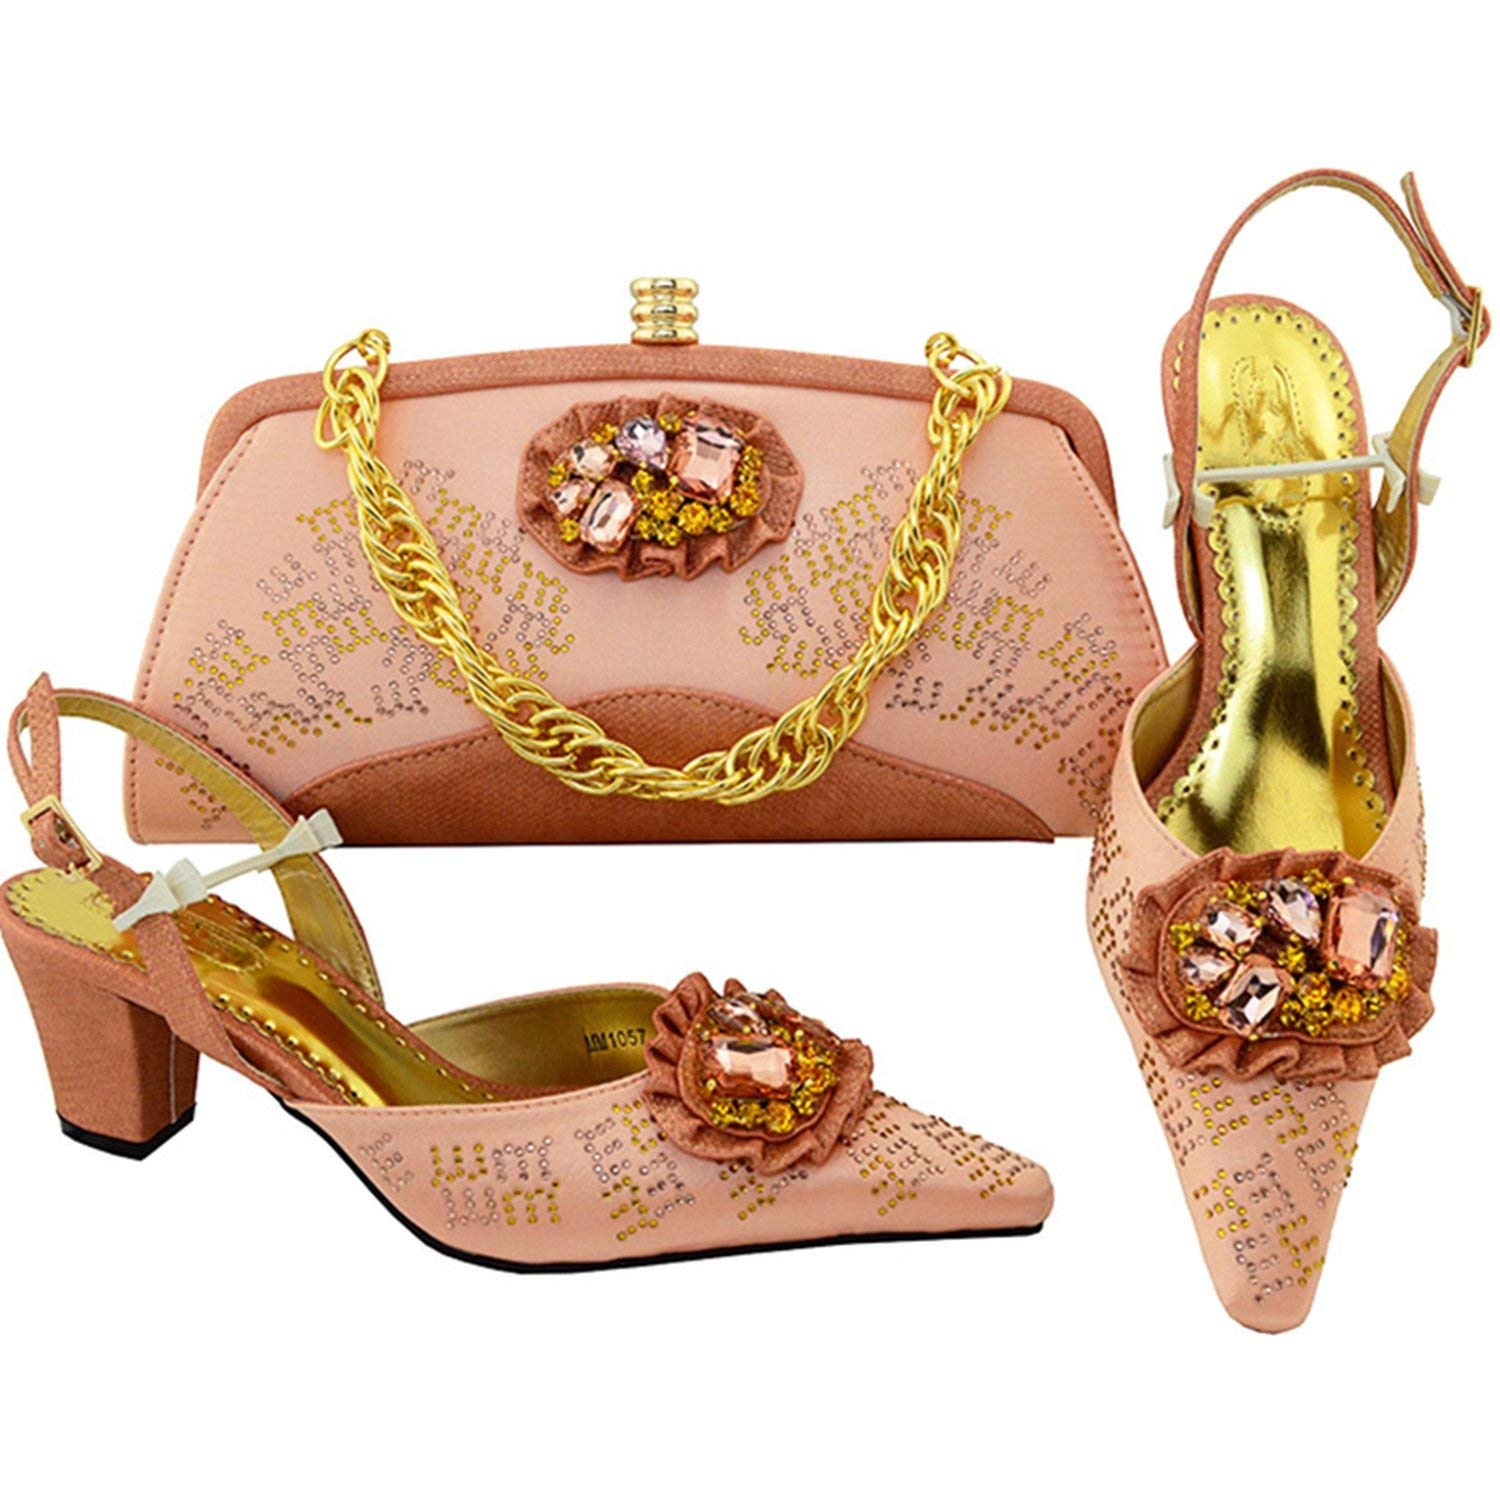 Gold Color Italian Shoes with Matching Bags Nigerian Wedding Shoes and Bag Set Party Shoes and Bag Set Bag and Shoes Set Italy,Peach,9 by KKK-3boss